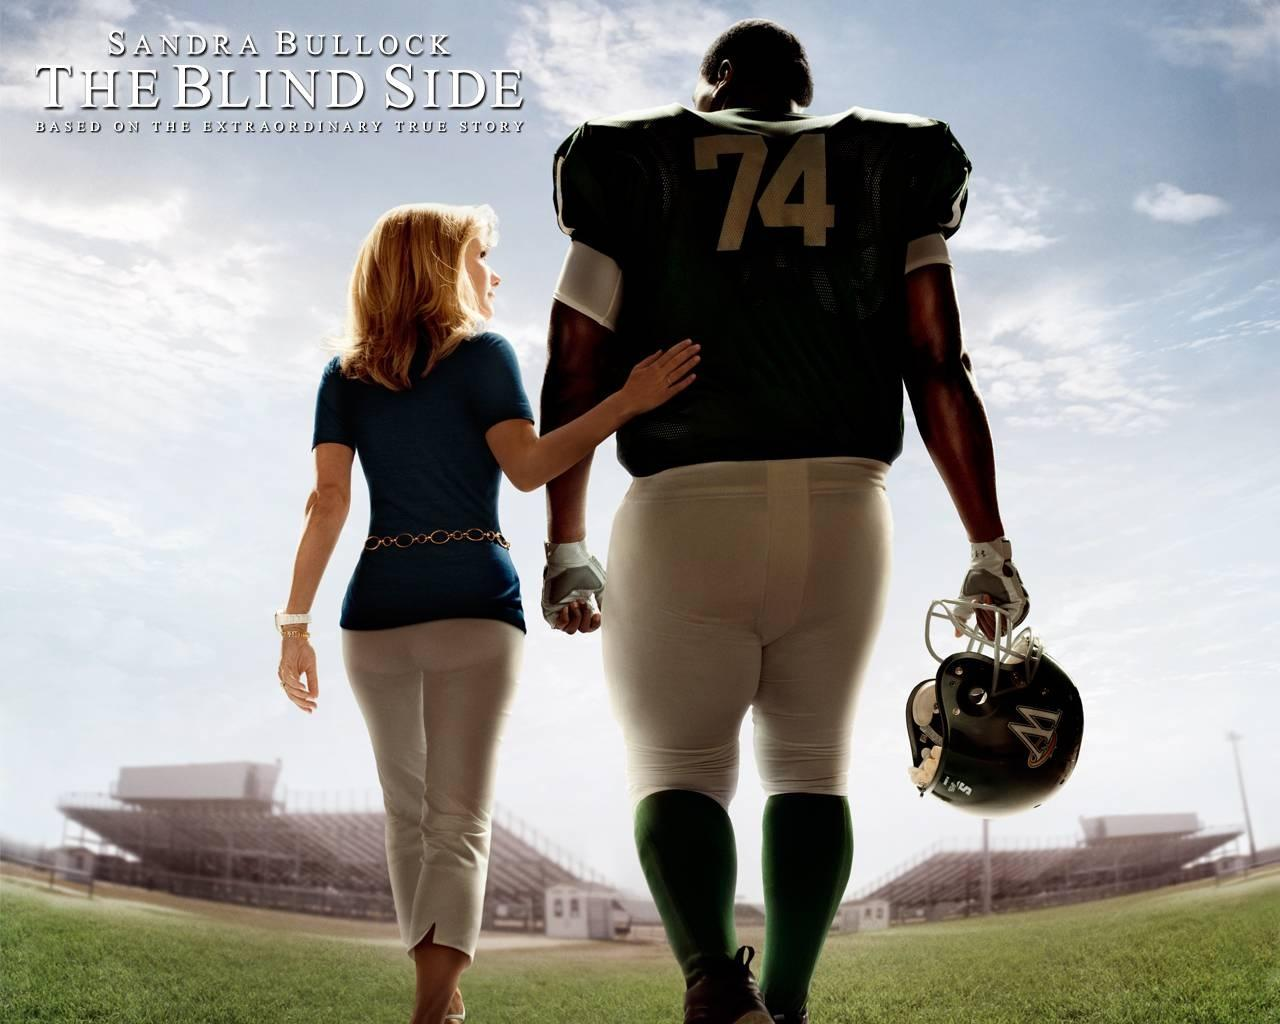 Film Friday: The Blind Side